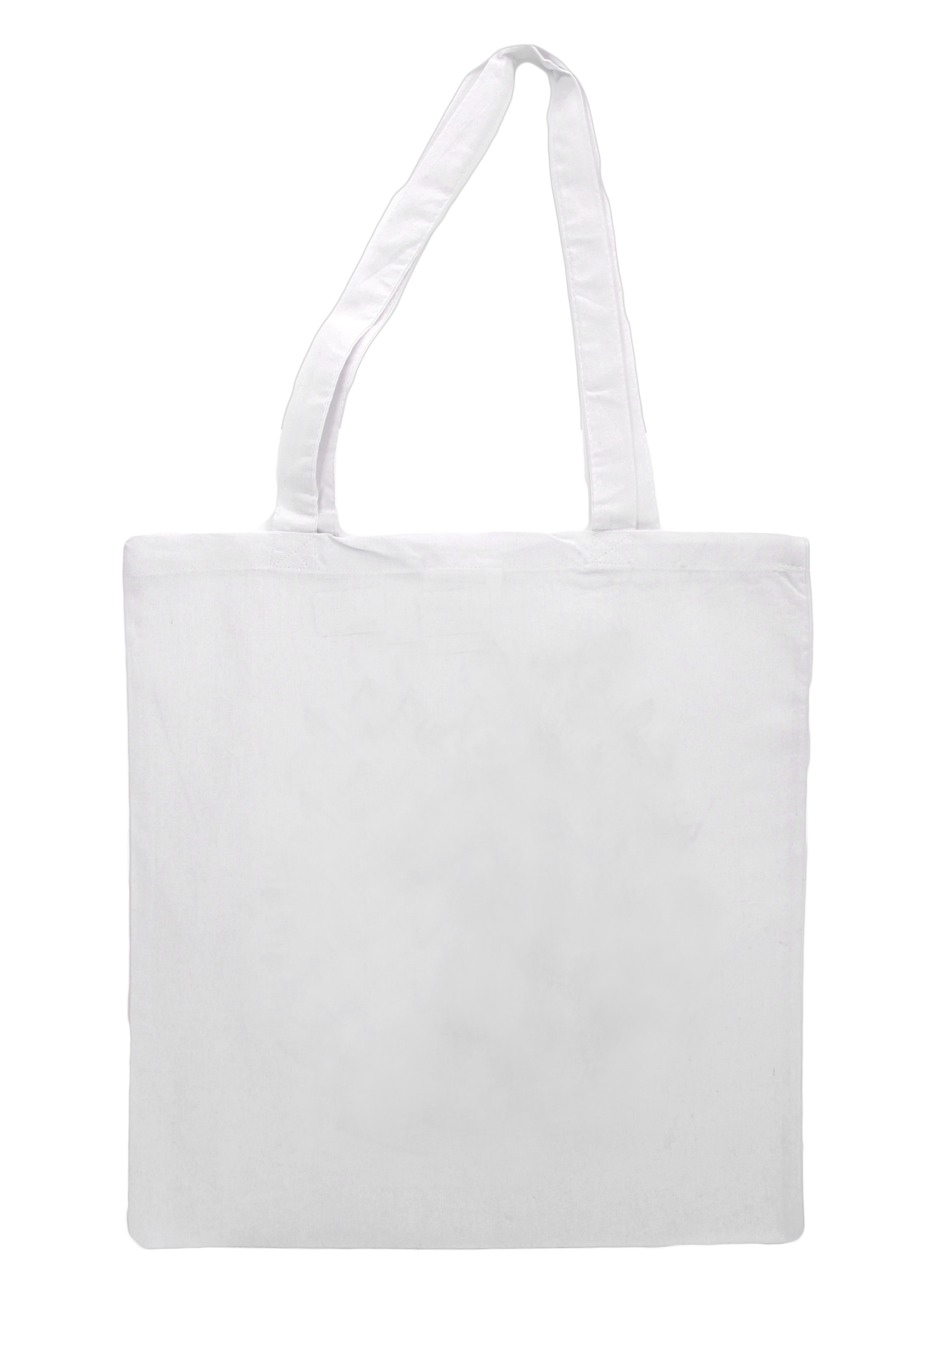 brutal knack intimate white tote bag streetwear shop